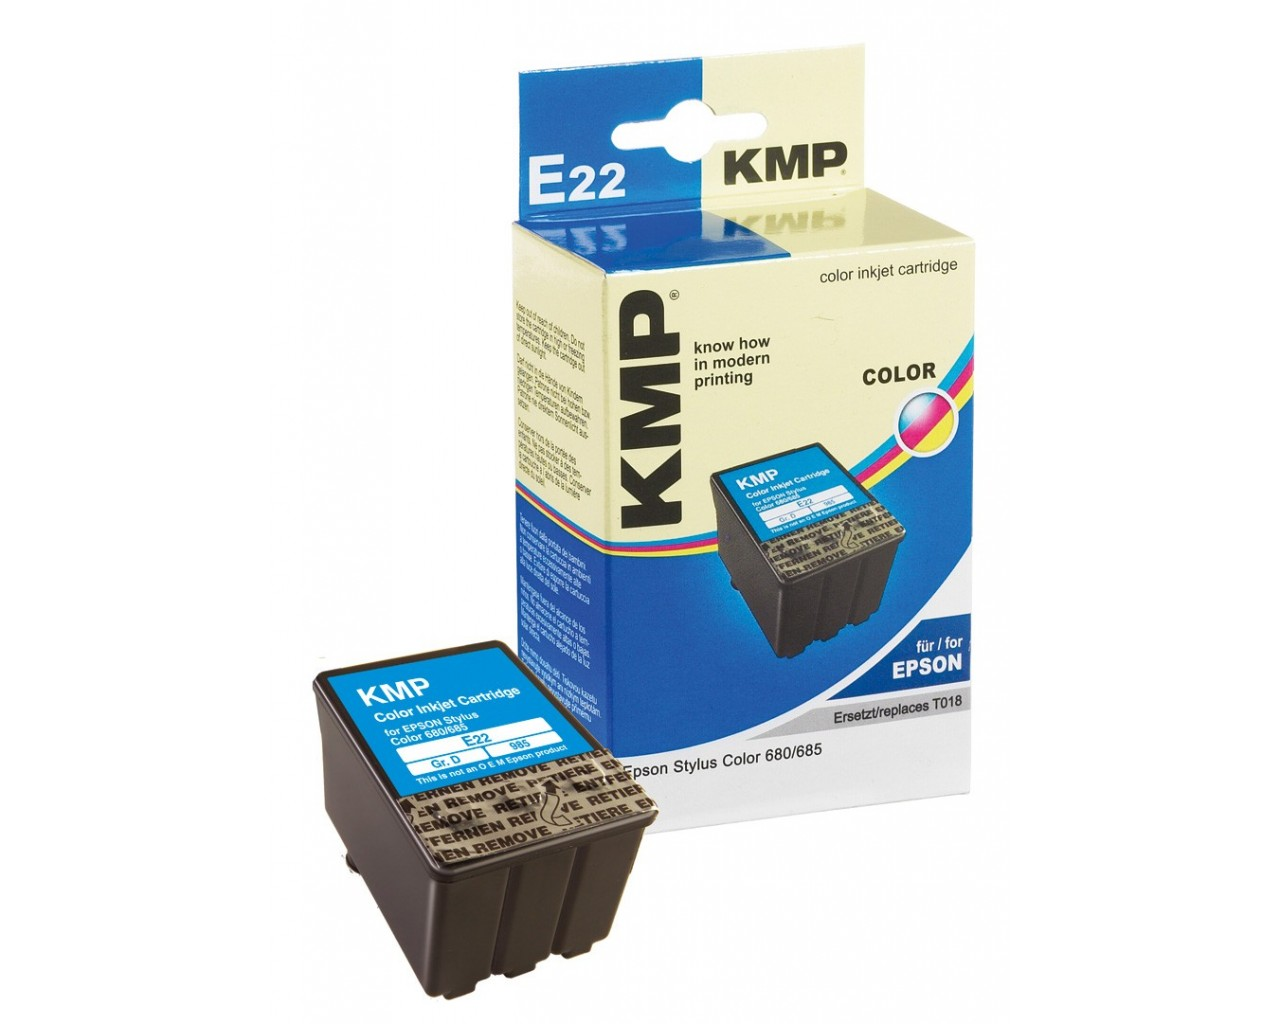 KMP Epson E22 ink cartridge color 36ml